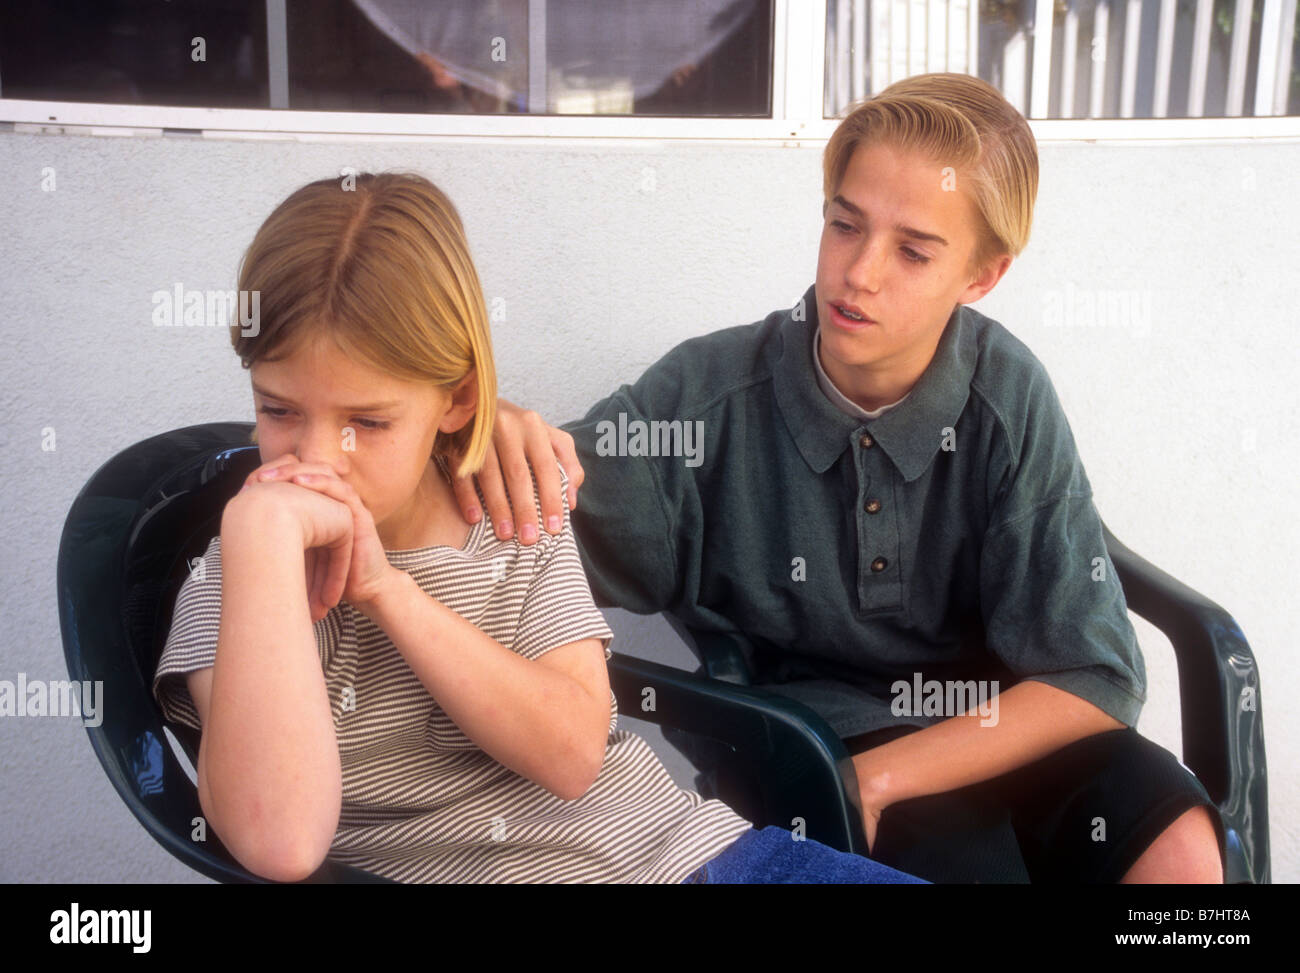 young boy comforts sad girl sibling family love concern support